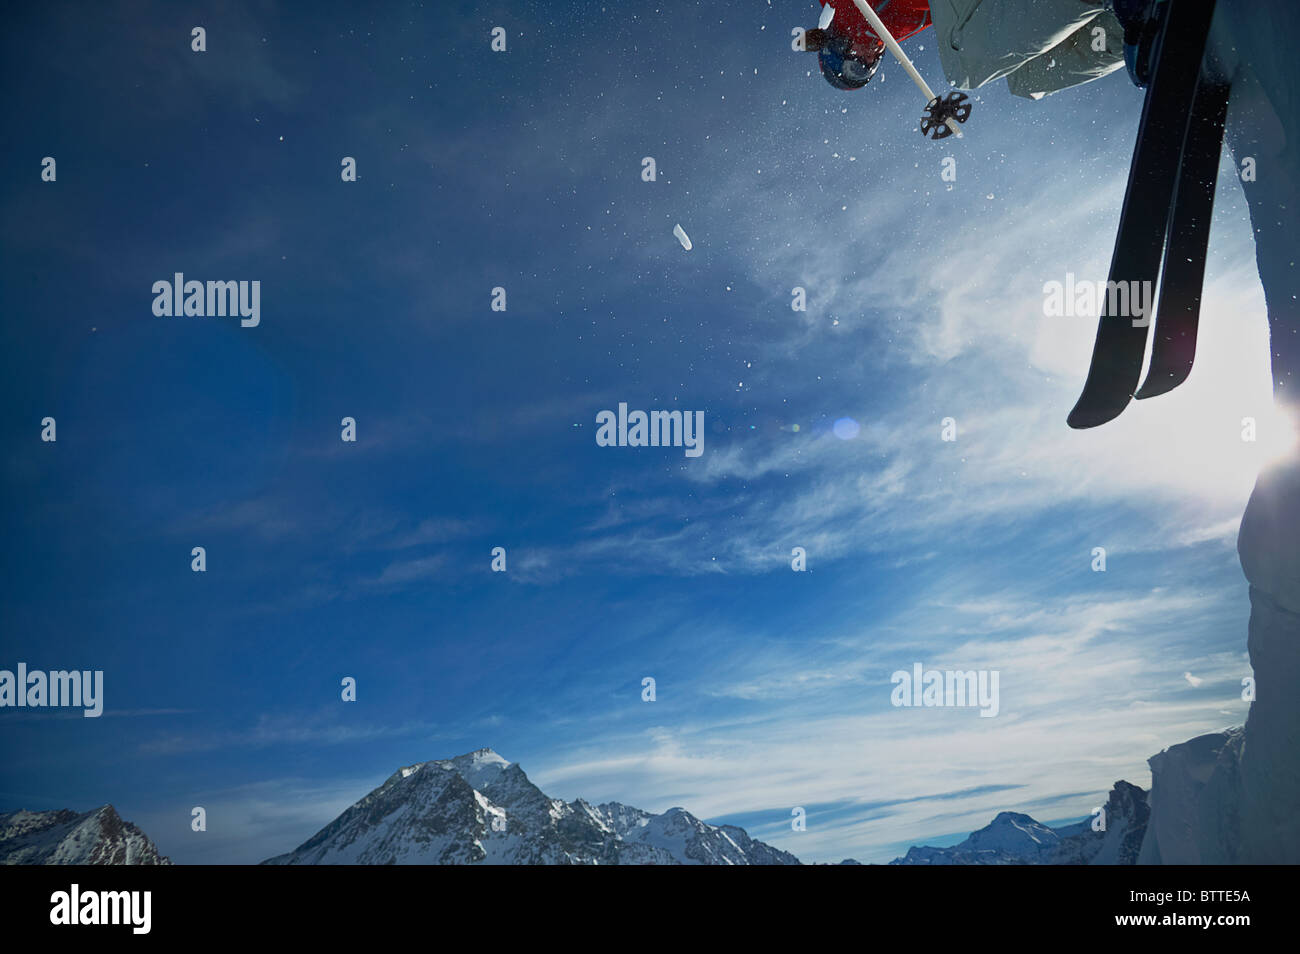 Female skier jumping off a mountain slope, Les Arcs, France. - Stock Image